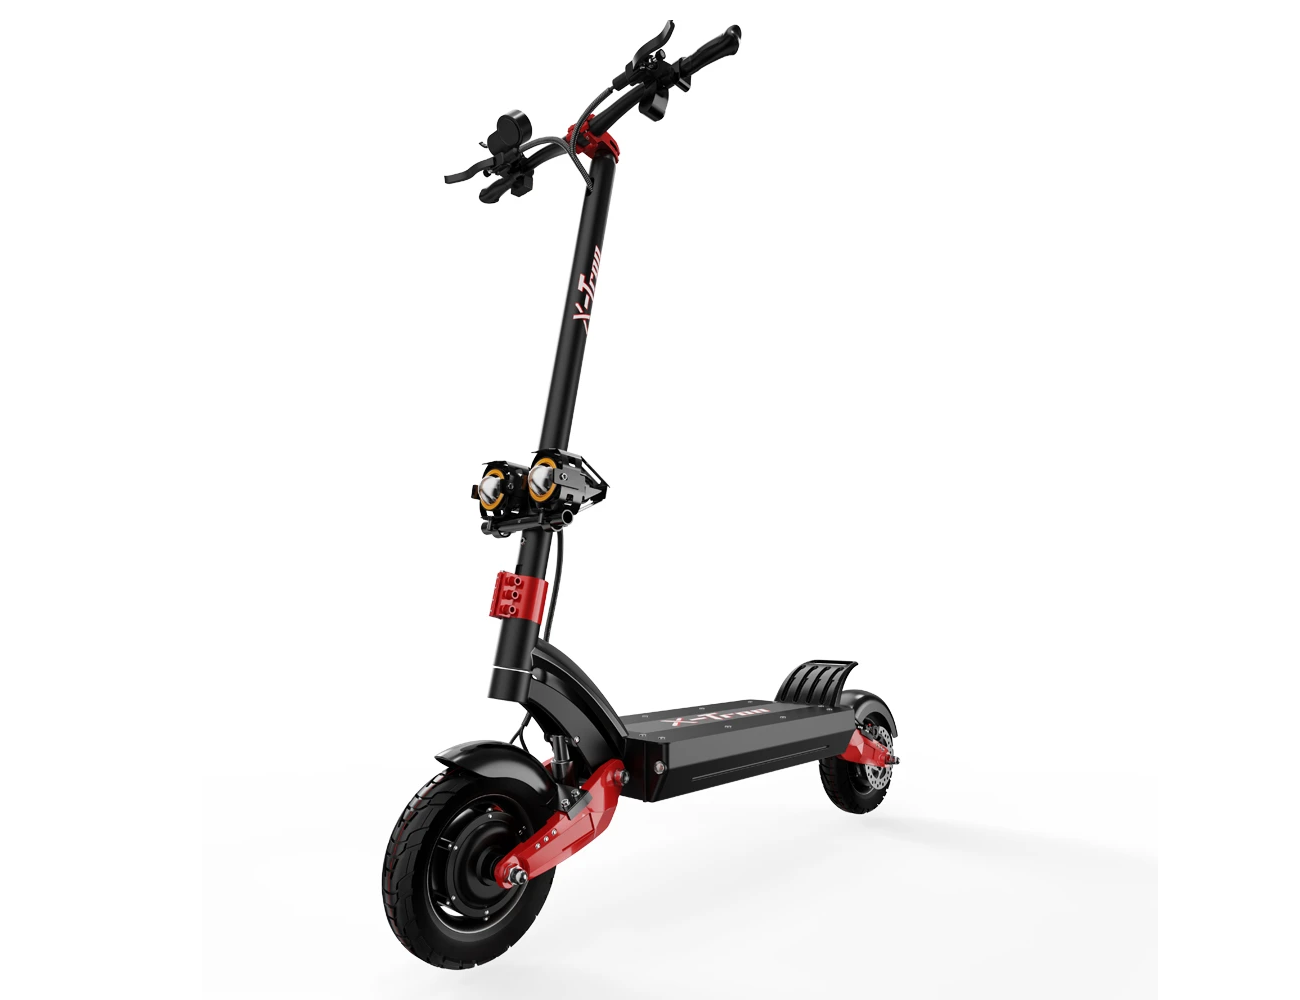 X-Tron X10 Pro Dual Motor Electric Scooter